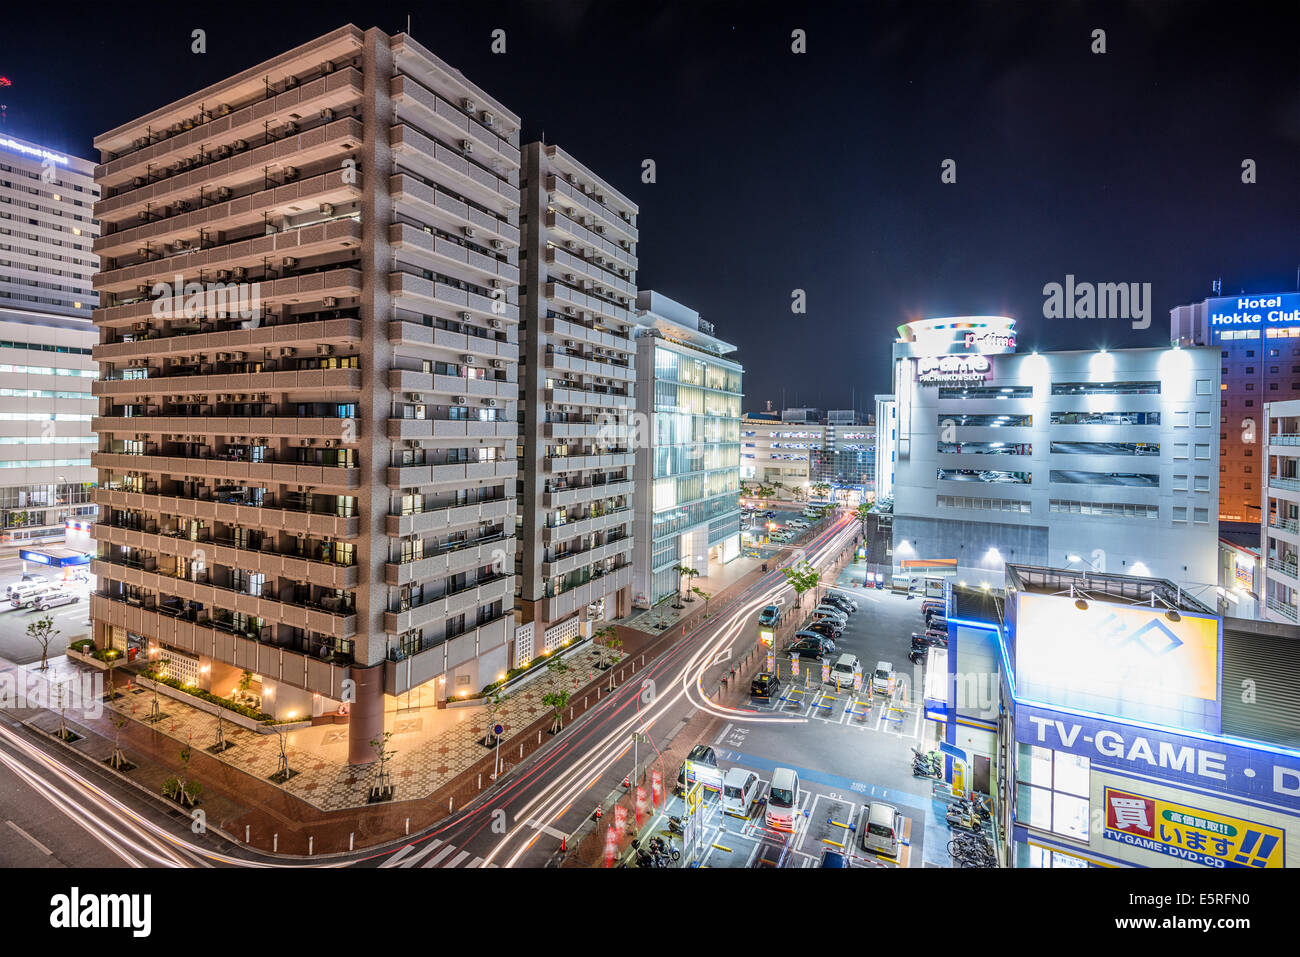 NAHA, JAPAN - NOVEMBER 12, 2014: Apartments and shops in downtown Naha, Okinawa. The city is the most populous in - Stock Image